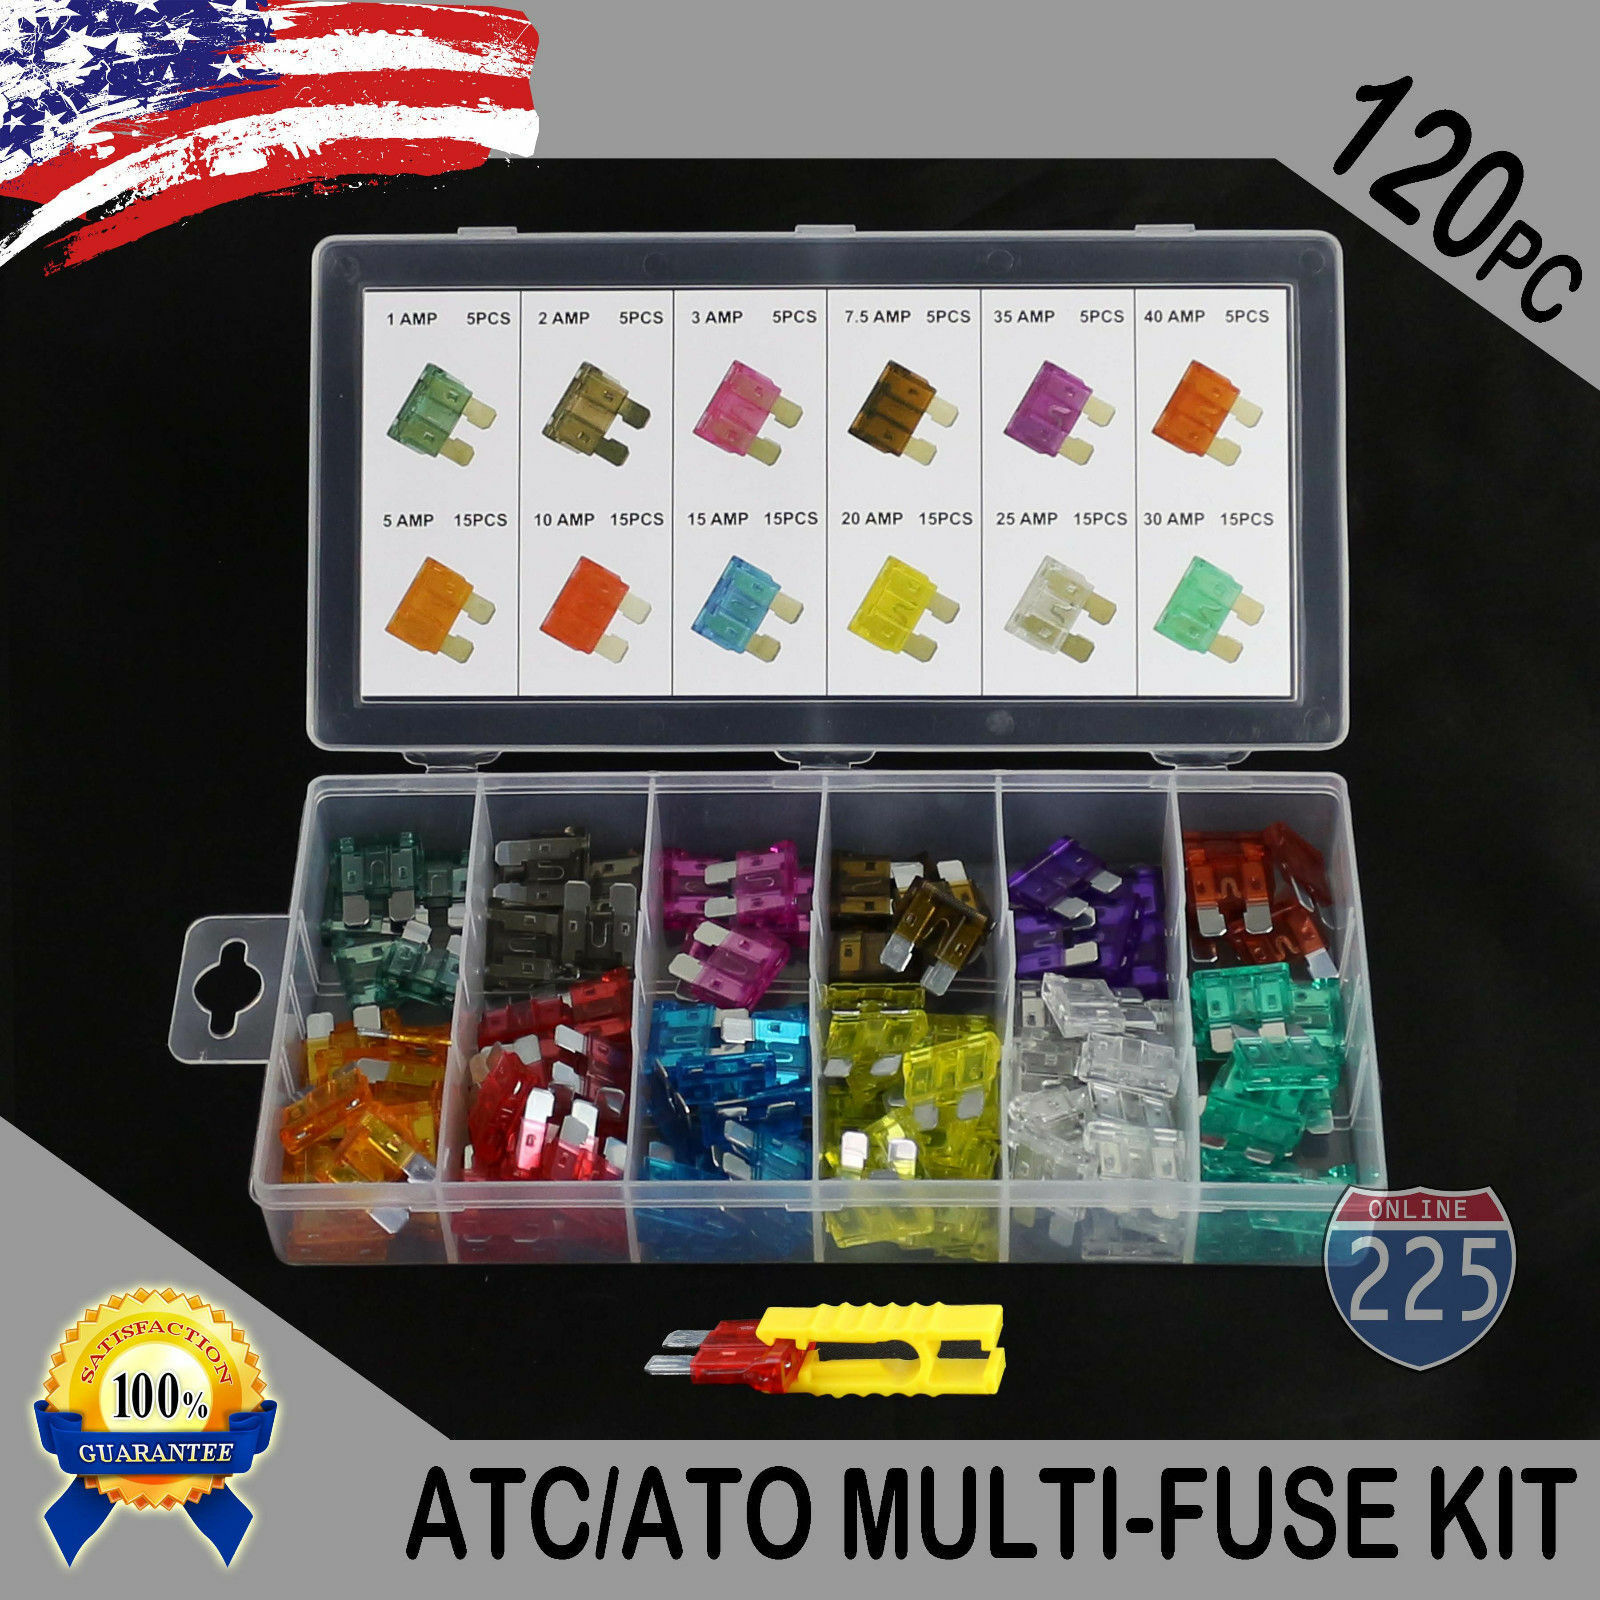 120 Pack Atc Ato Apr Ats Blade Fuse Assortment Auto Car Motorcycle Ah Box 1 Of 1only Available